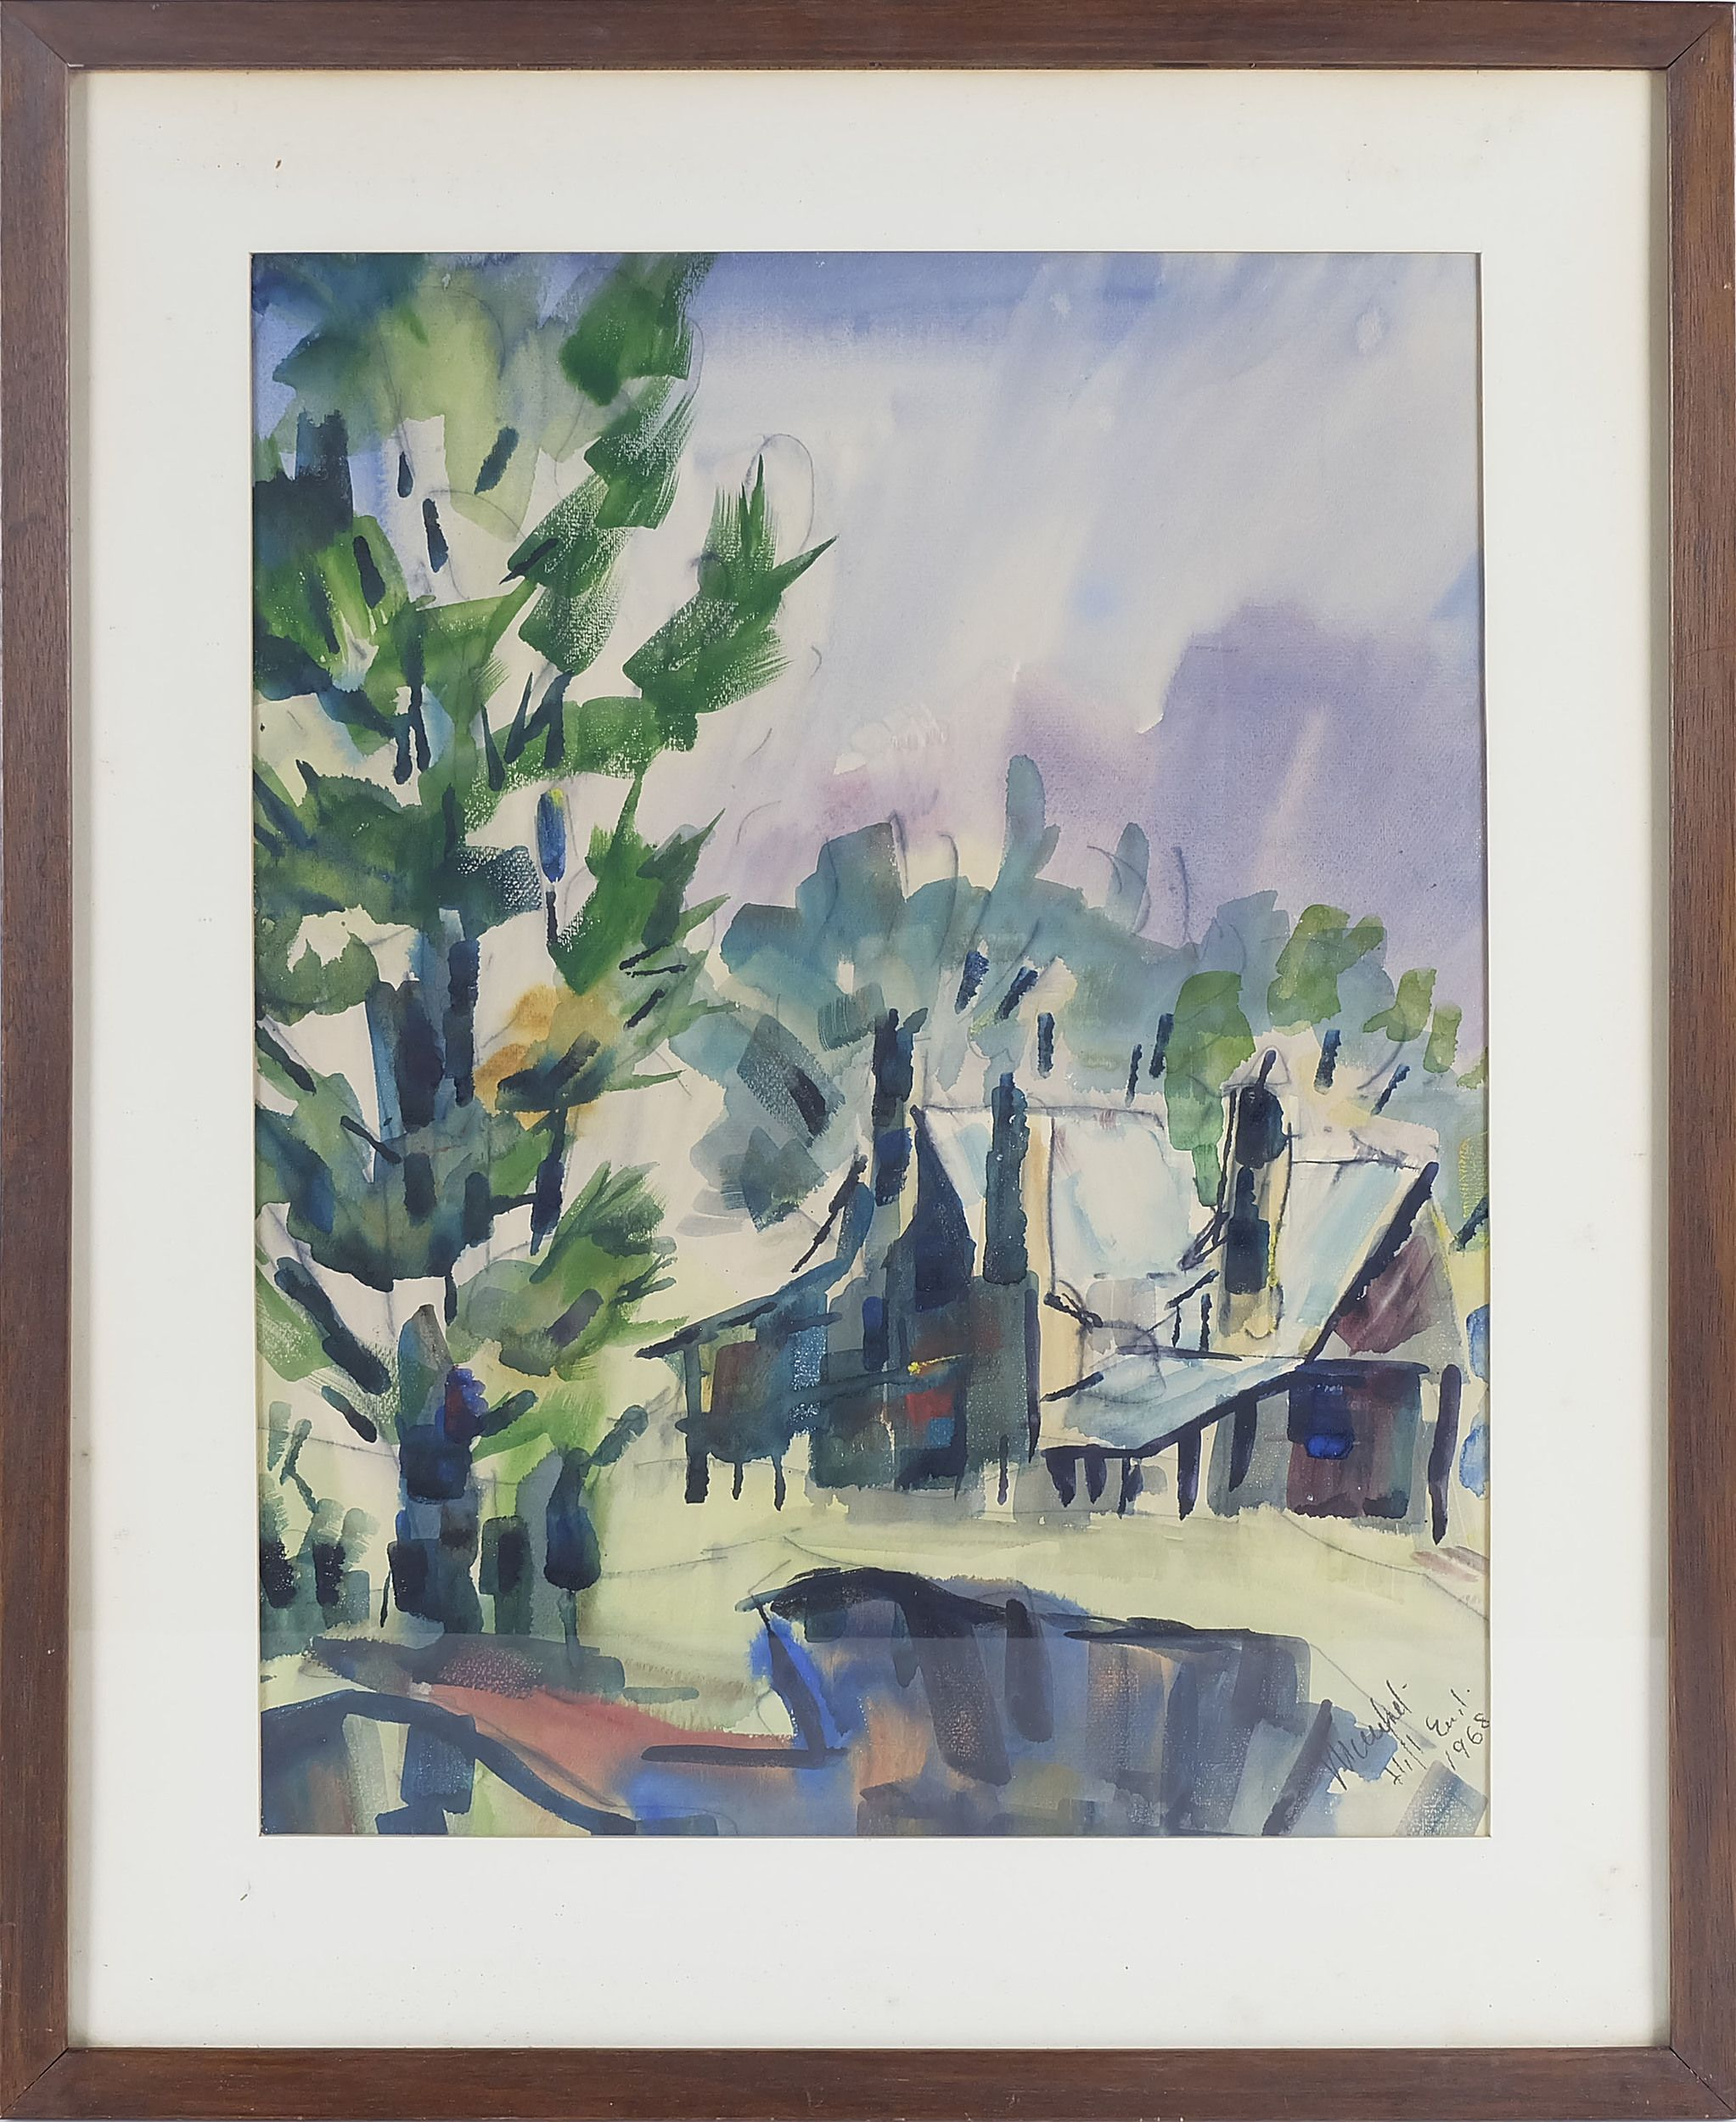 'Manfred Lindenburger (1914-) Hill End Watercolour'